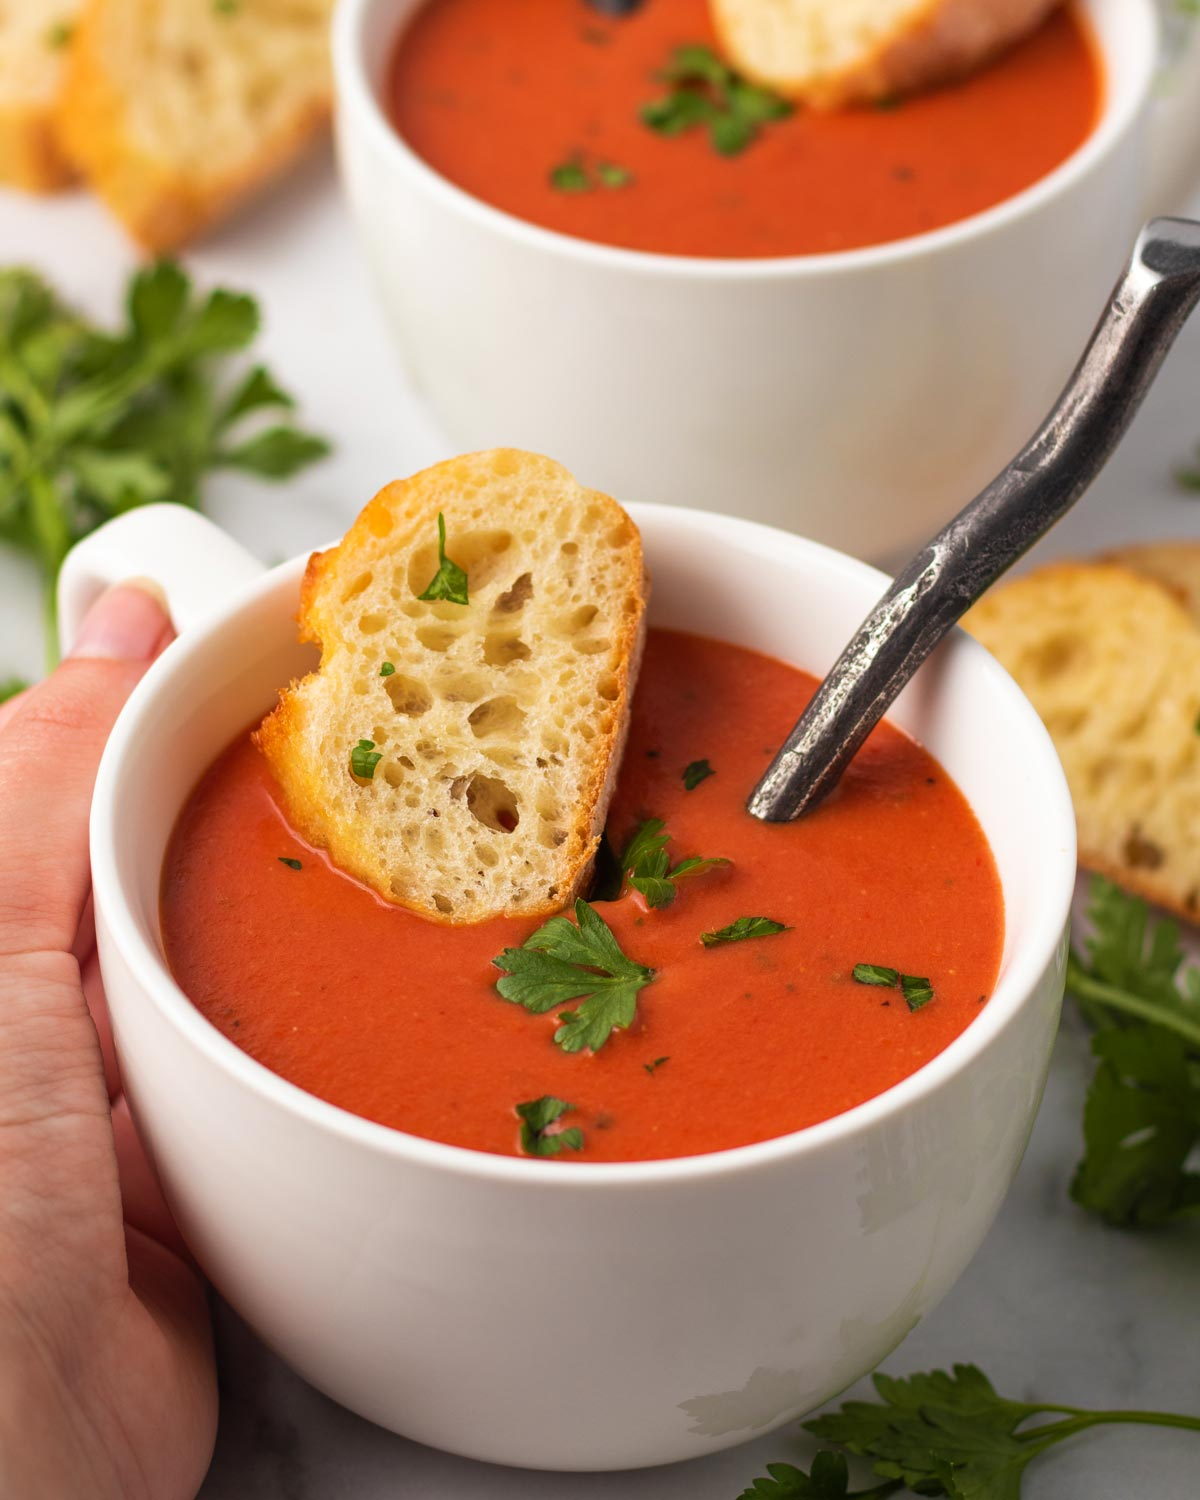 A large mug of vegan creamy tomato soup with a baguette slice, topped with fresh parsley.